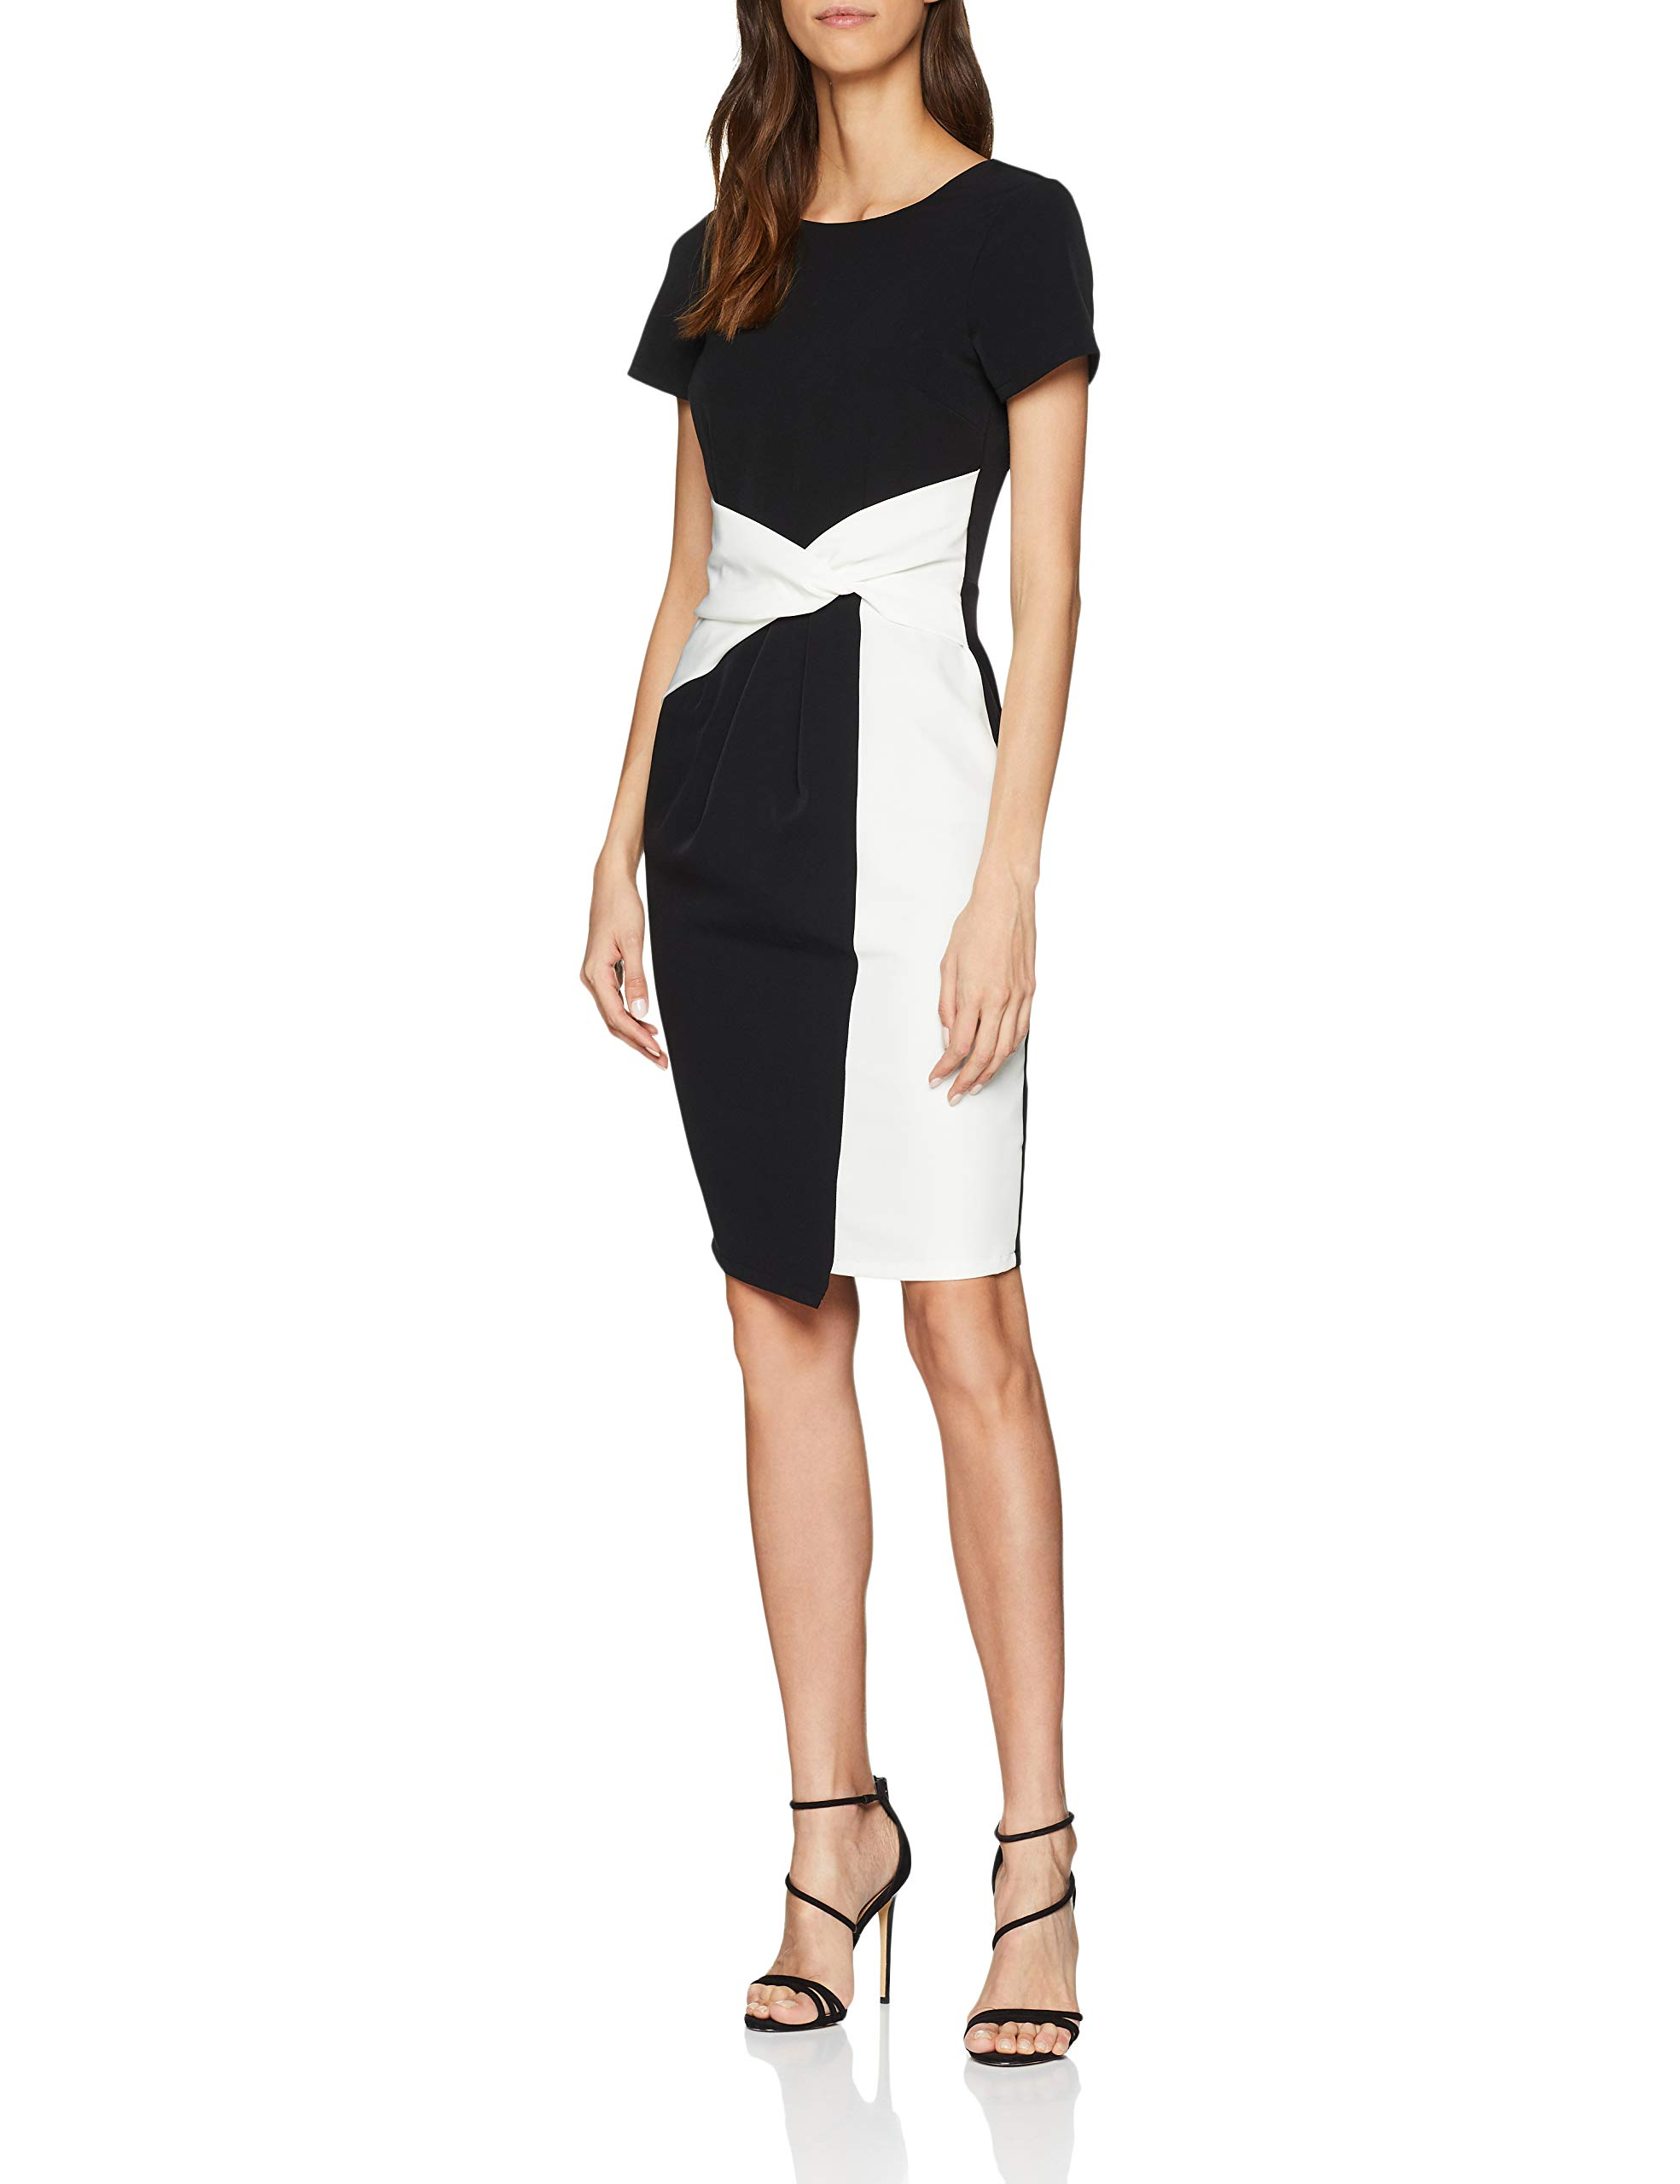 Paper Dolls 00138taille Twisted Fabricant10Femme Bodycon RobeNoirblack Wasit cTFl3K1J